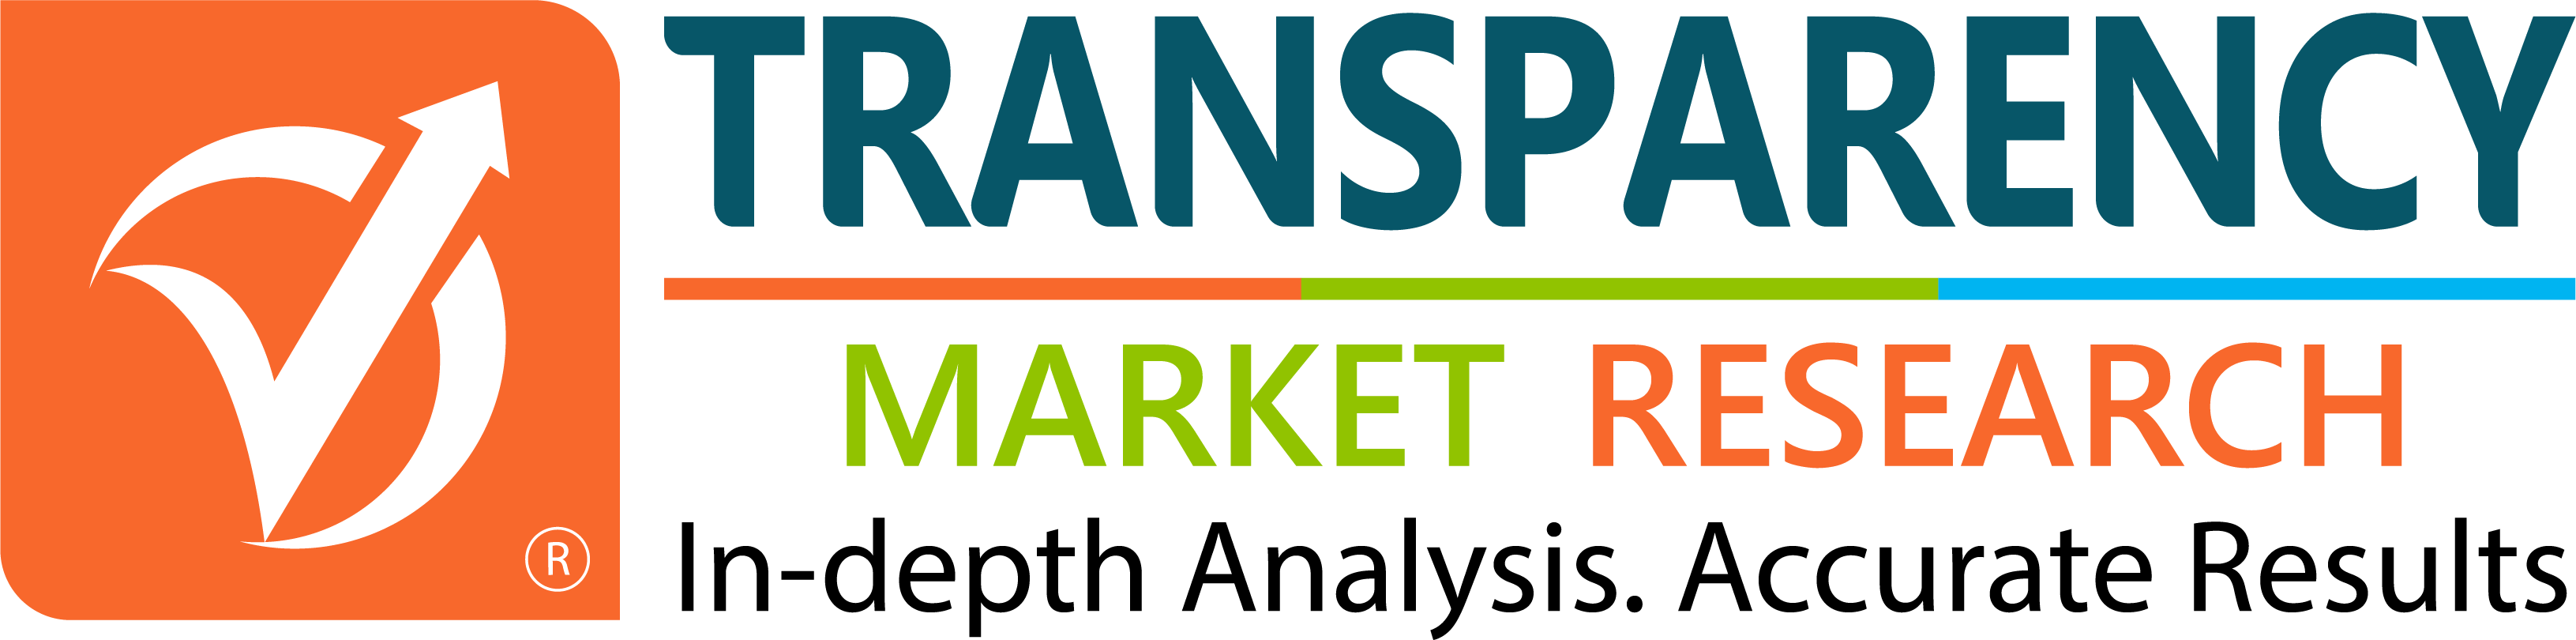 Point-of-care Diagnostics Market Size is Generating Revenue of US$ 11.7 Billion by 2024 | Transparency Market Research